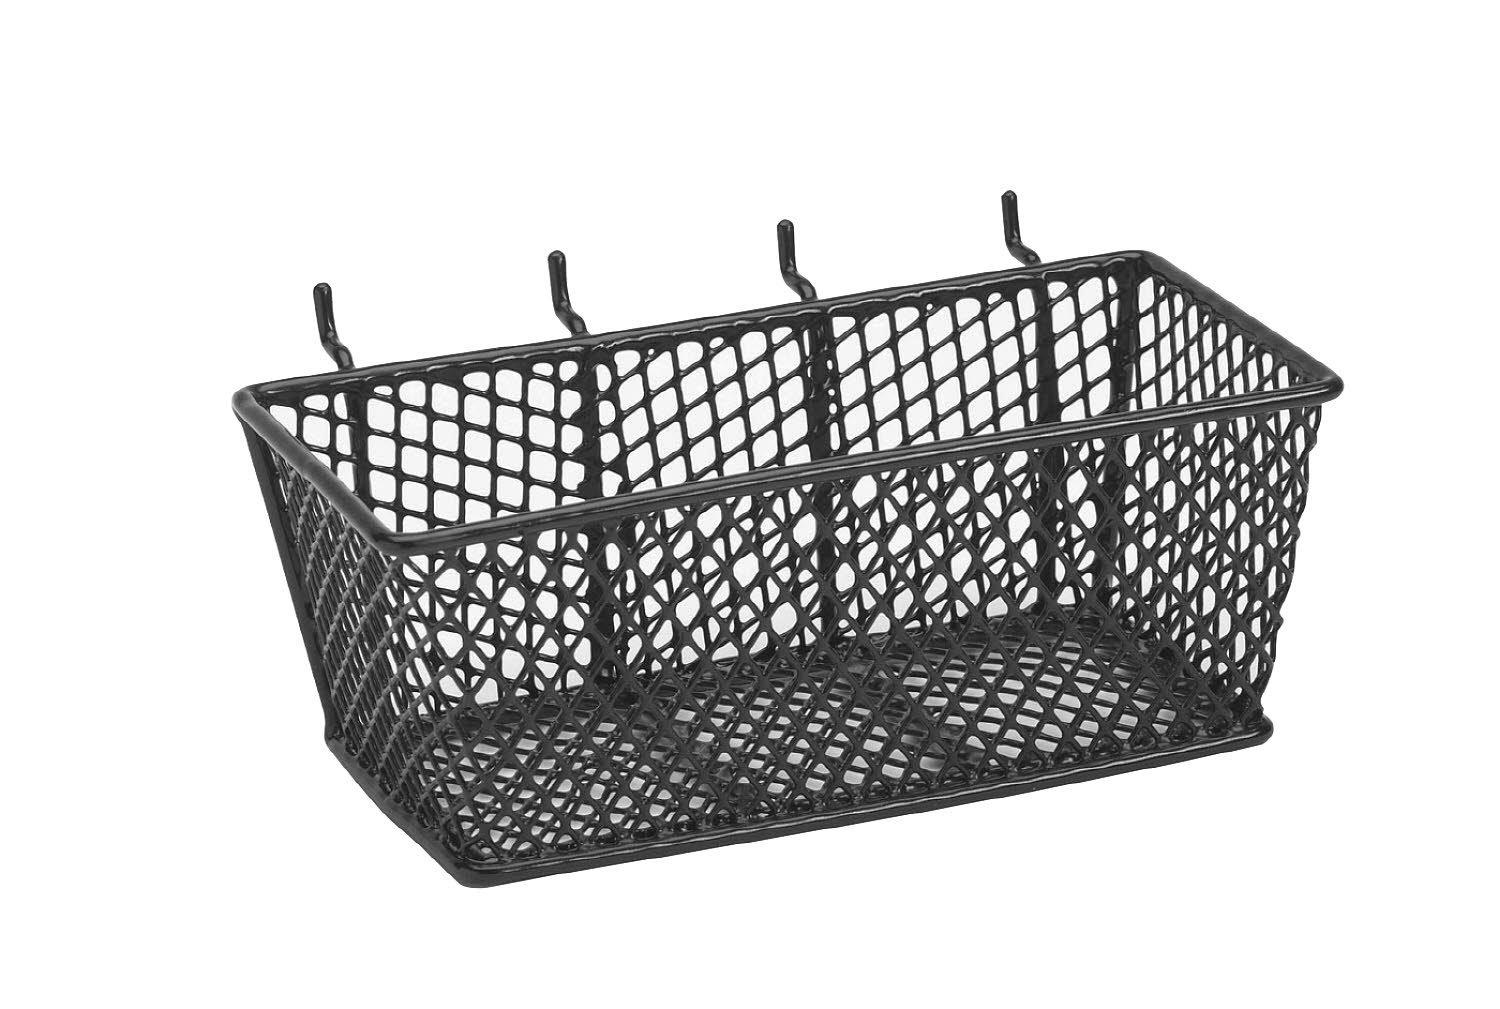 bulldog 131592 wire mesh basket with peg hooks black medium new free shipping ebay. Black Bedroom Furniture Sets. Home Design Ideas